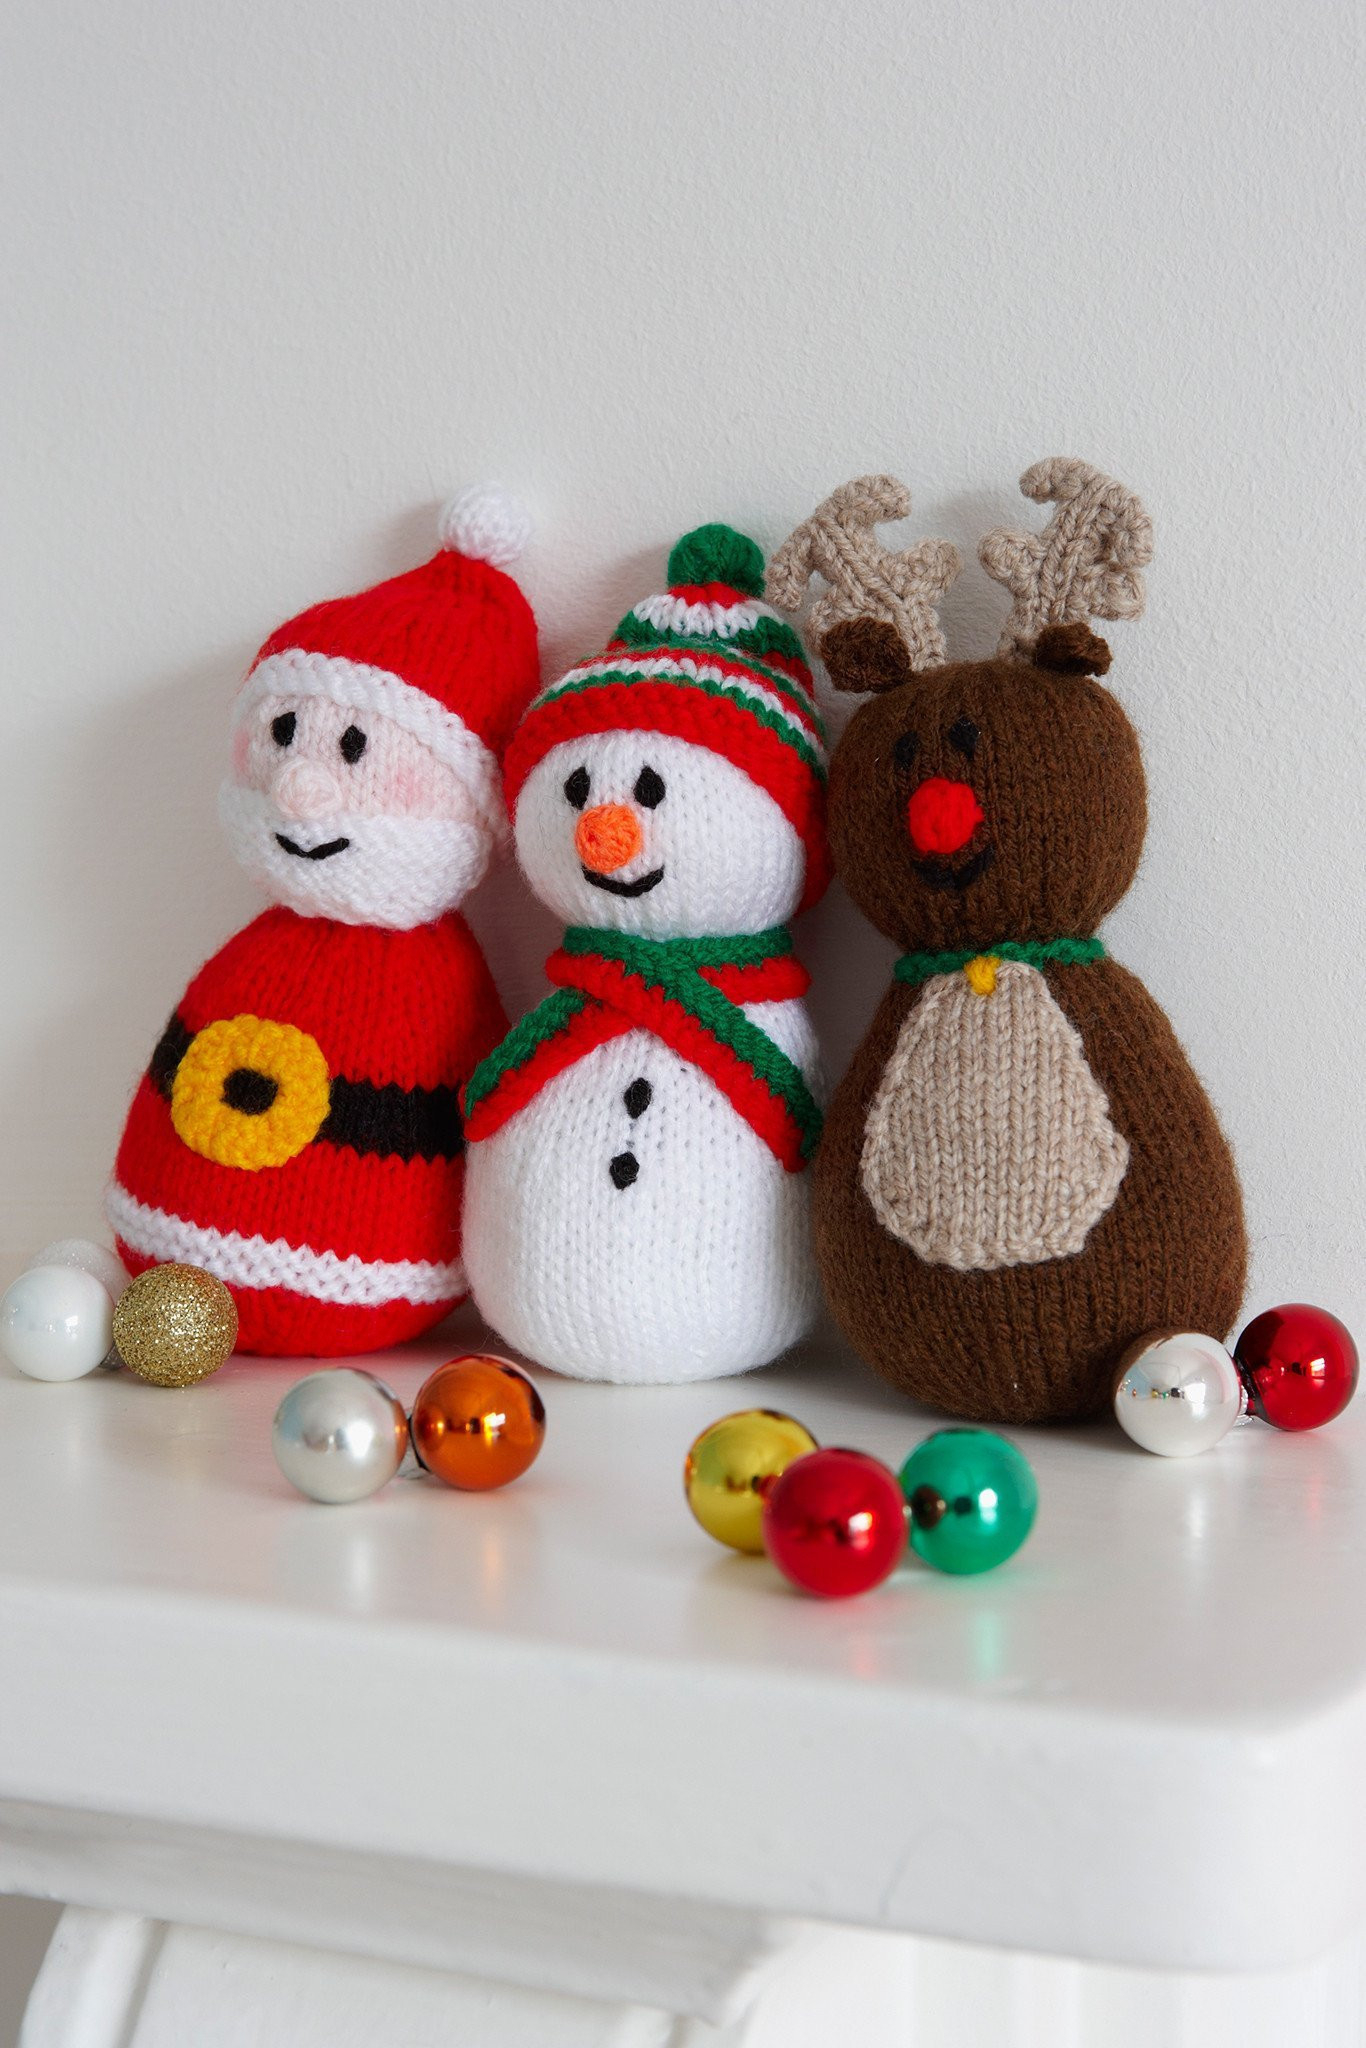 Knitting Patterns For Toys Uk Christmas Toys Knitting Patterns